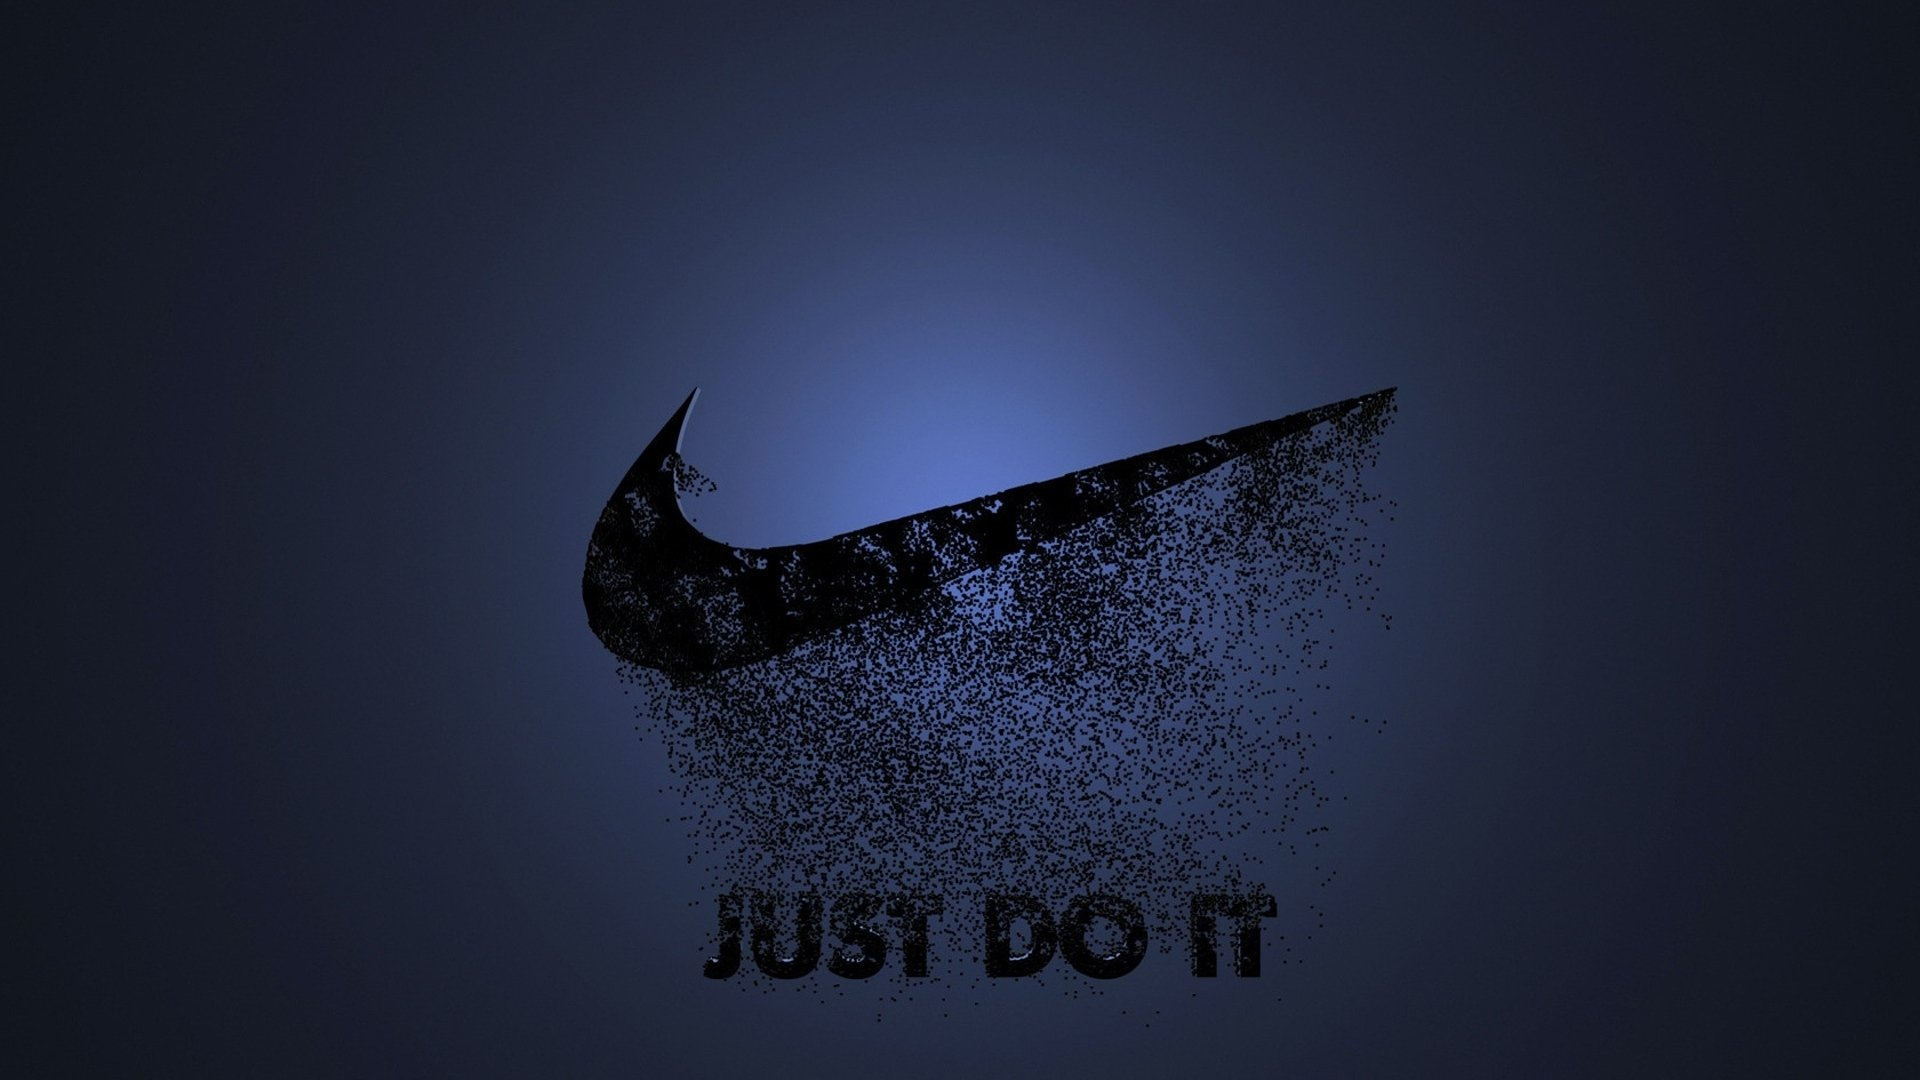 Hd wallpaper background id 632661 1920x1080 products nike